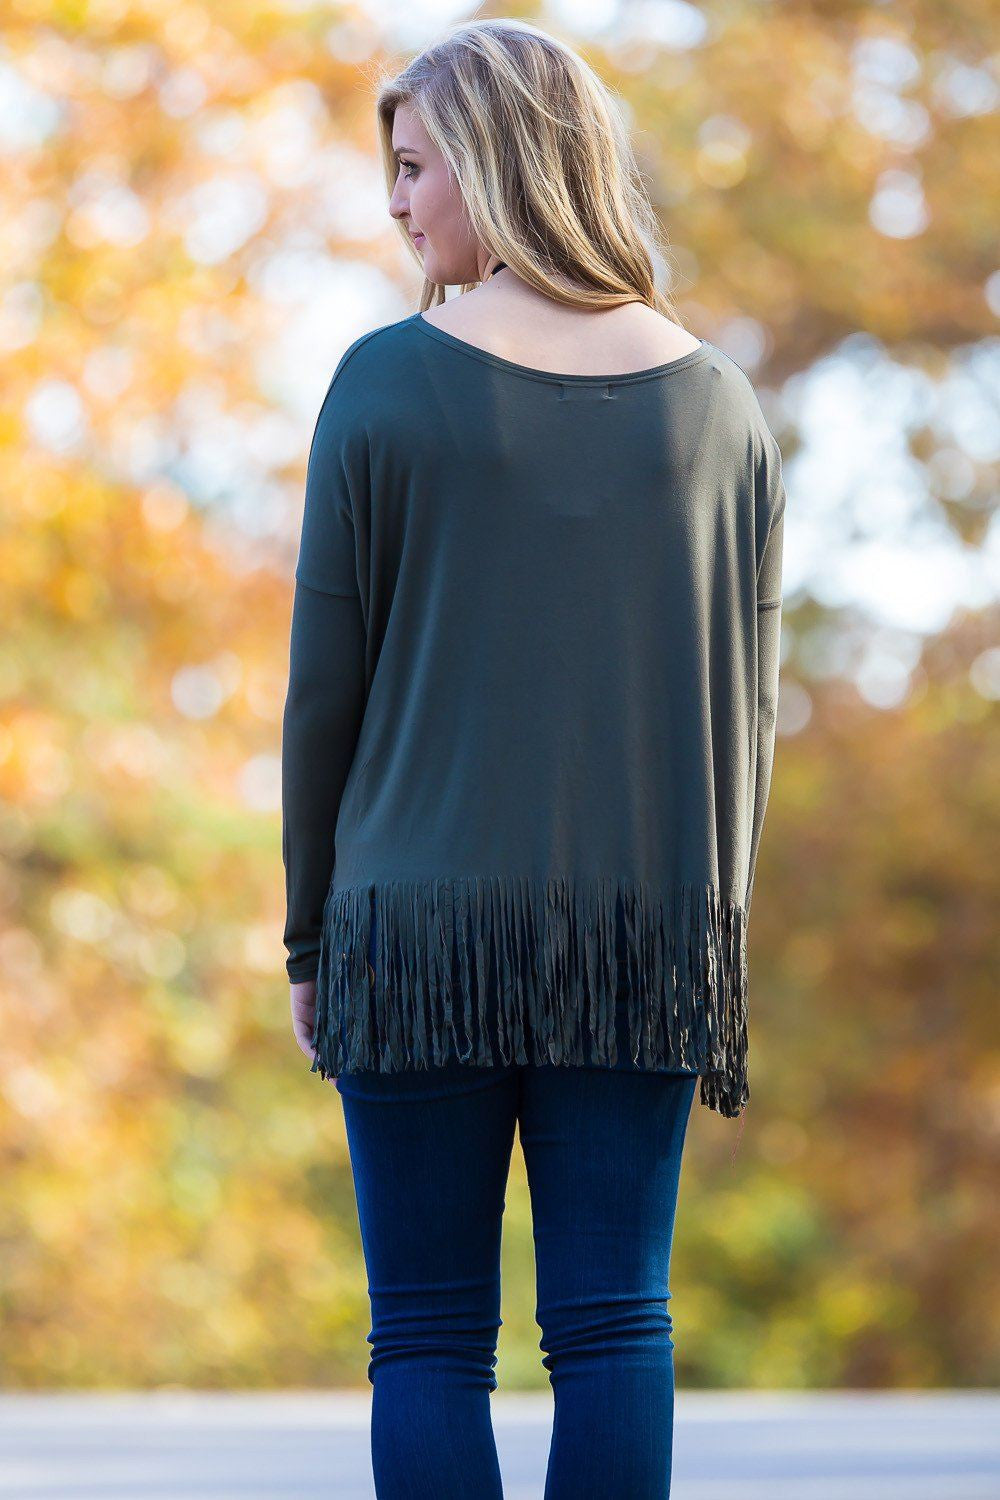 Long Sleeve Fringe Piko Top - Army - Piko Clothing